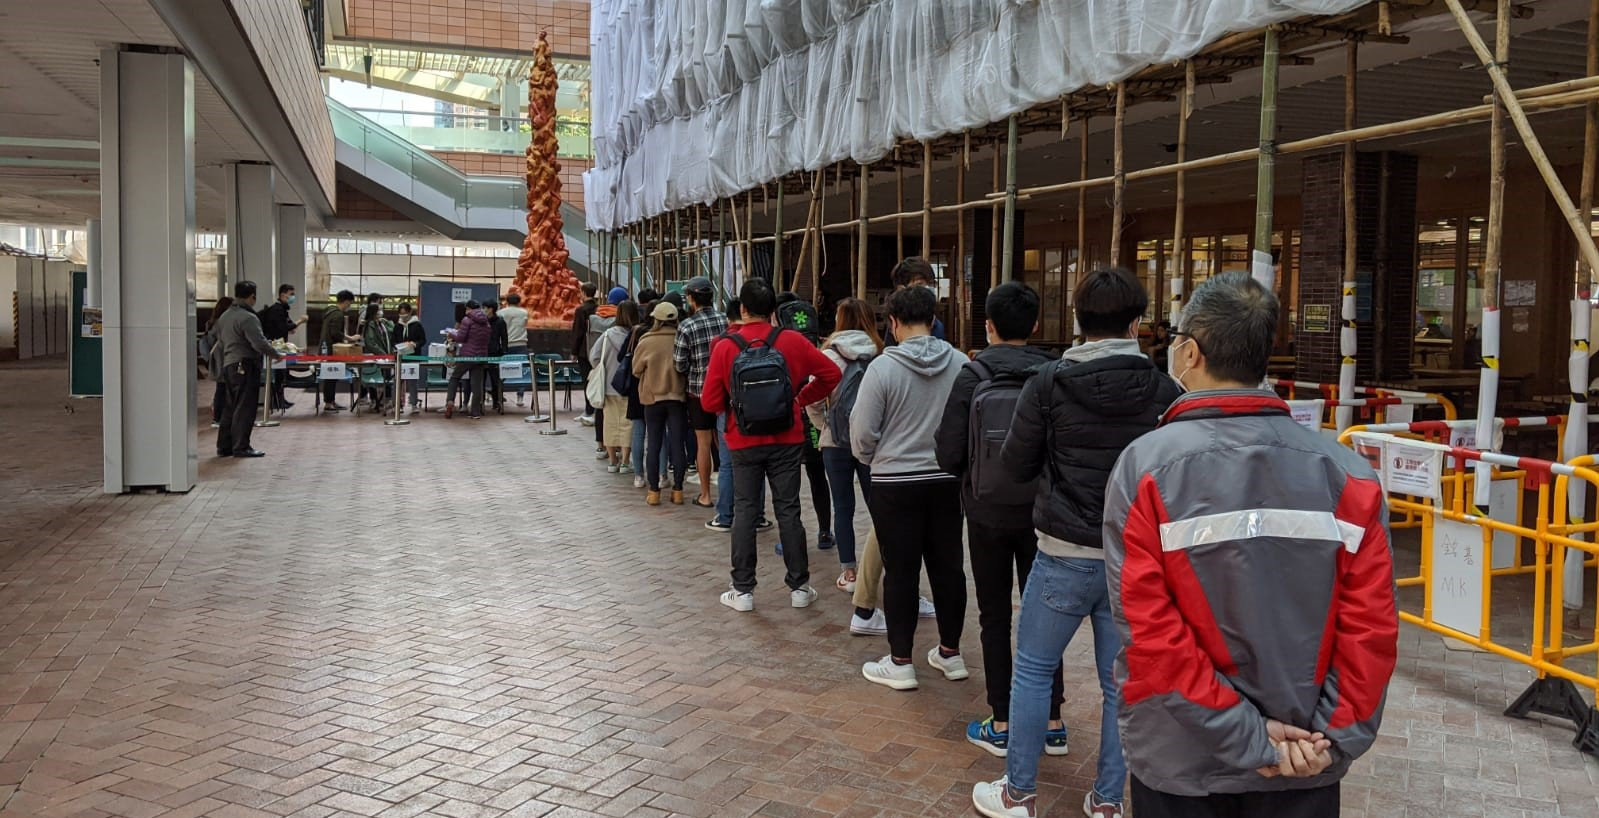 Image depicting people waiting in line